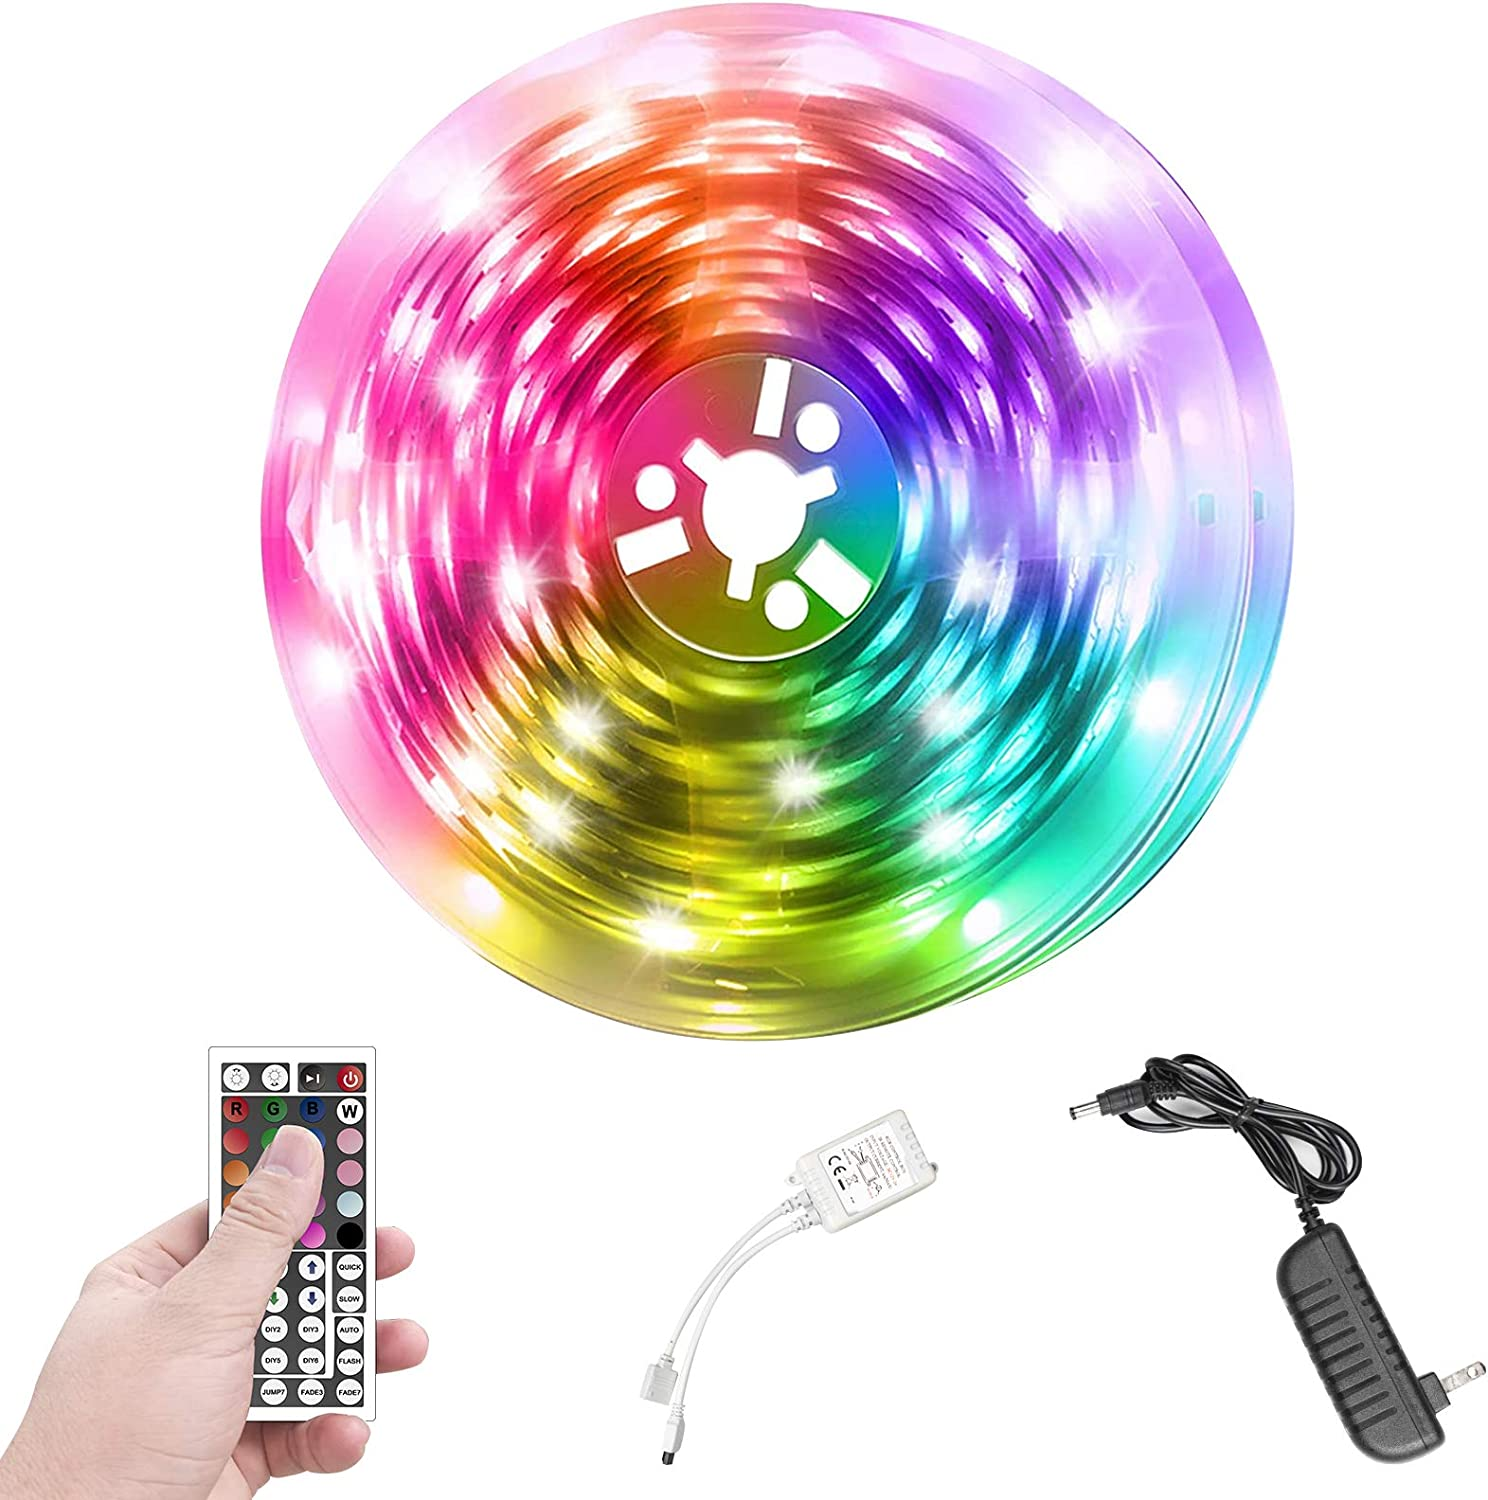 Led Strip Lights for Bedroom, Lightdot 16.4ft RGB Color Changing Strip Light with Remote for Bedroom, Party and Home Decoration